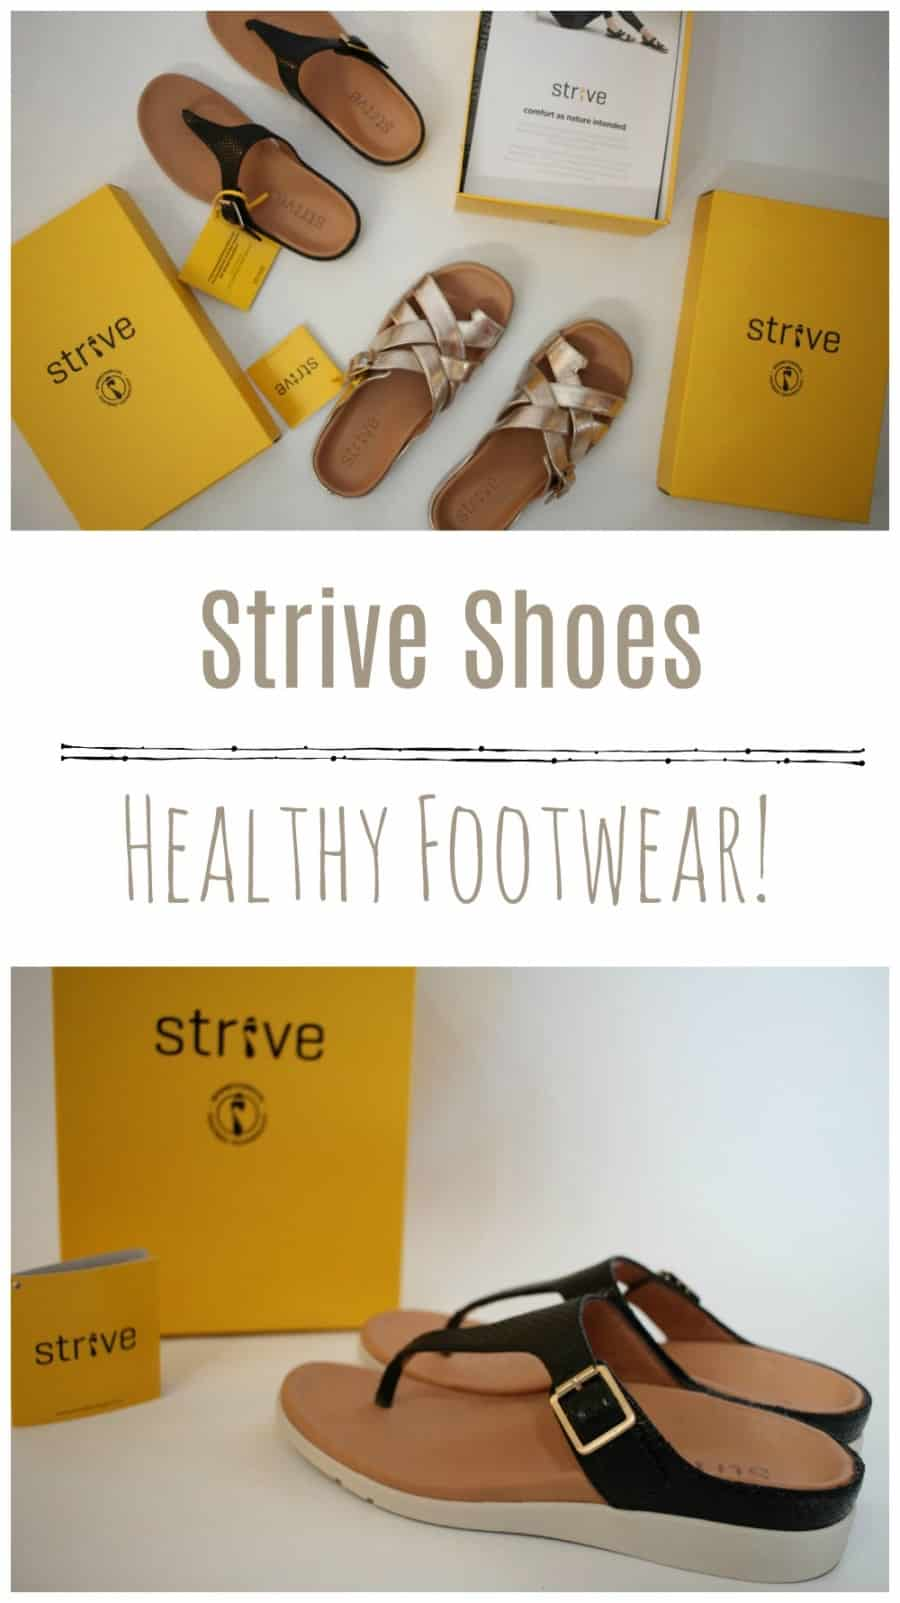 a7c2d1ae0243 My Review of Strive Shoes - Are They Worth the Cost  - Thrifty Nifty ...